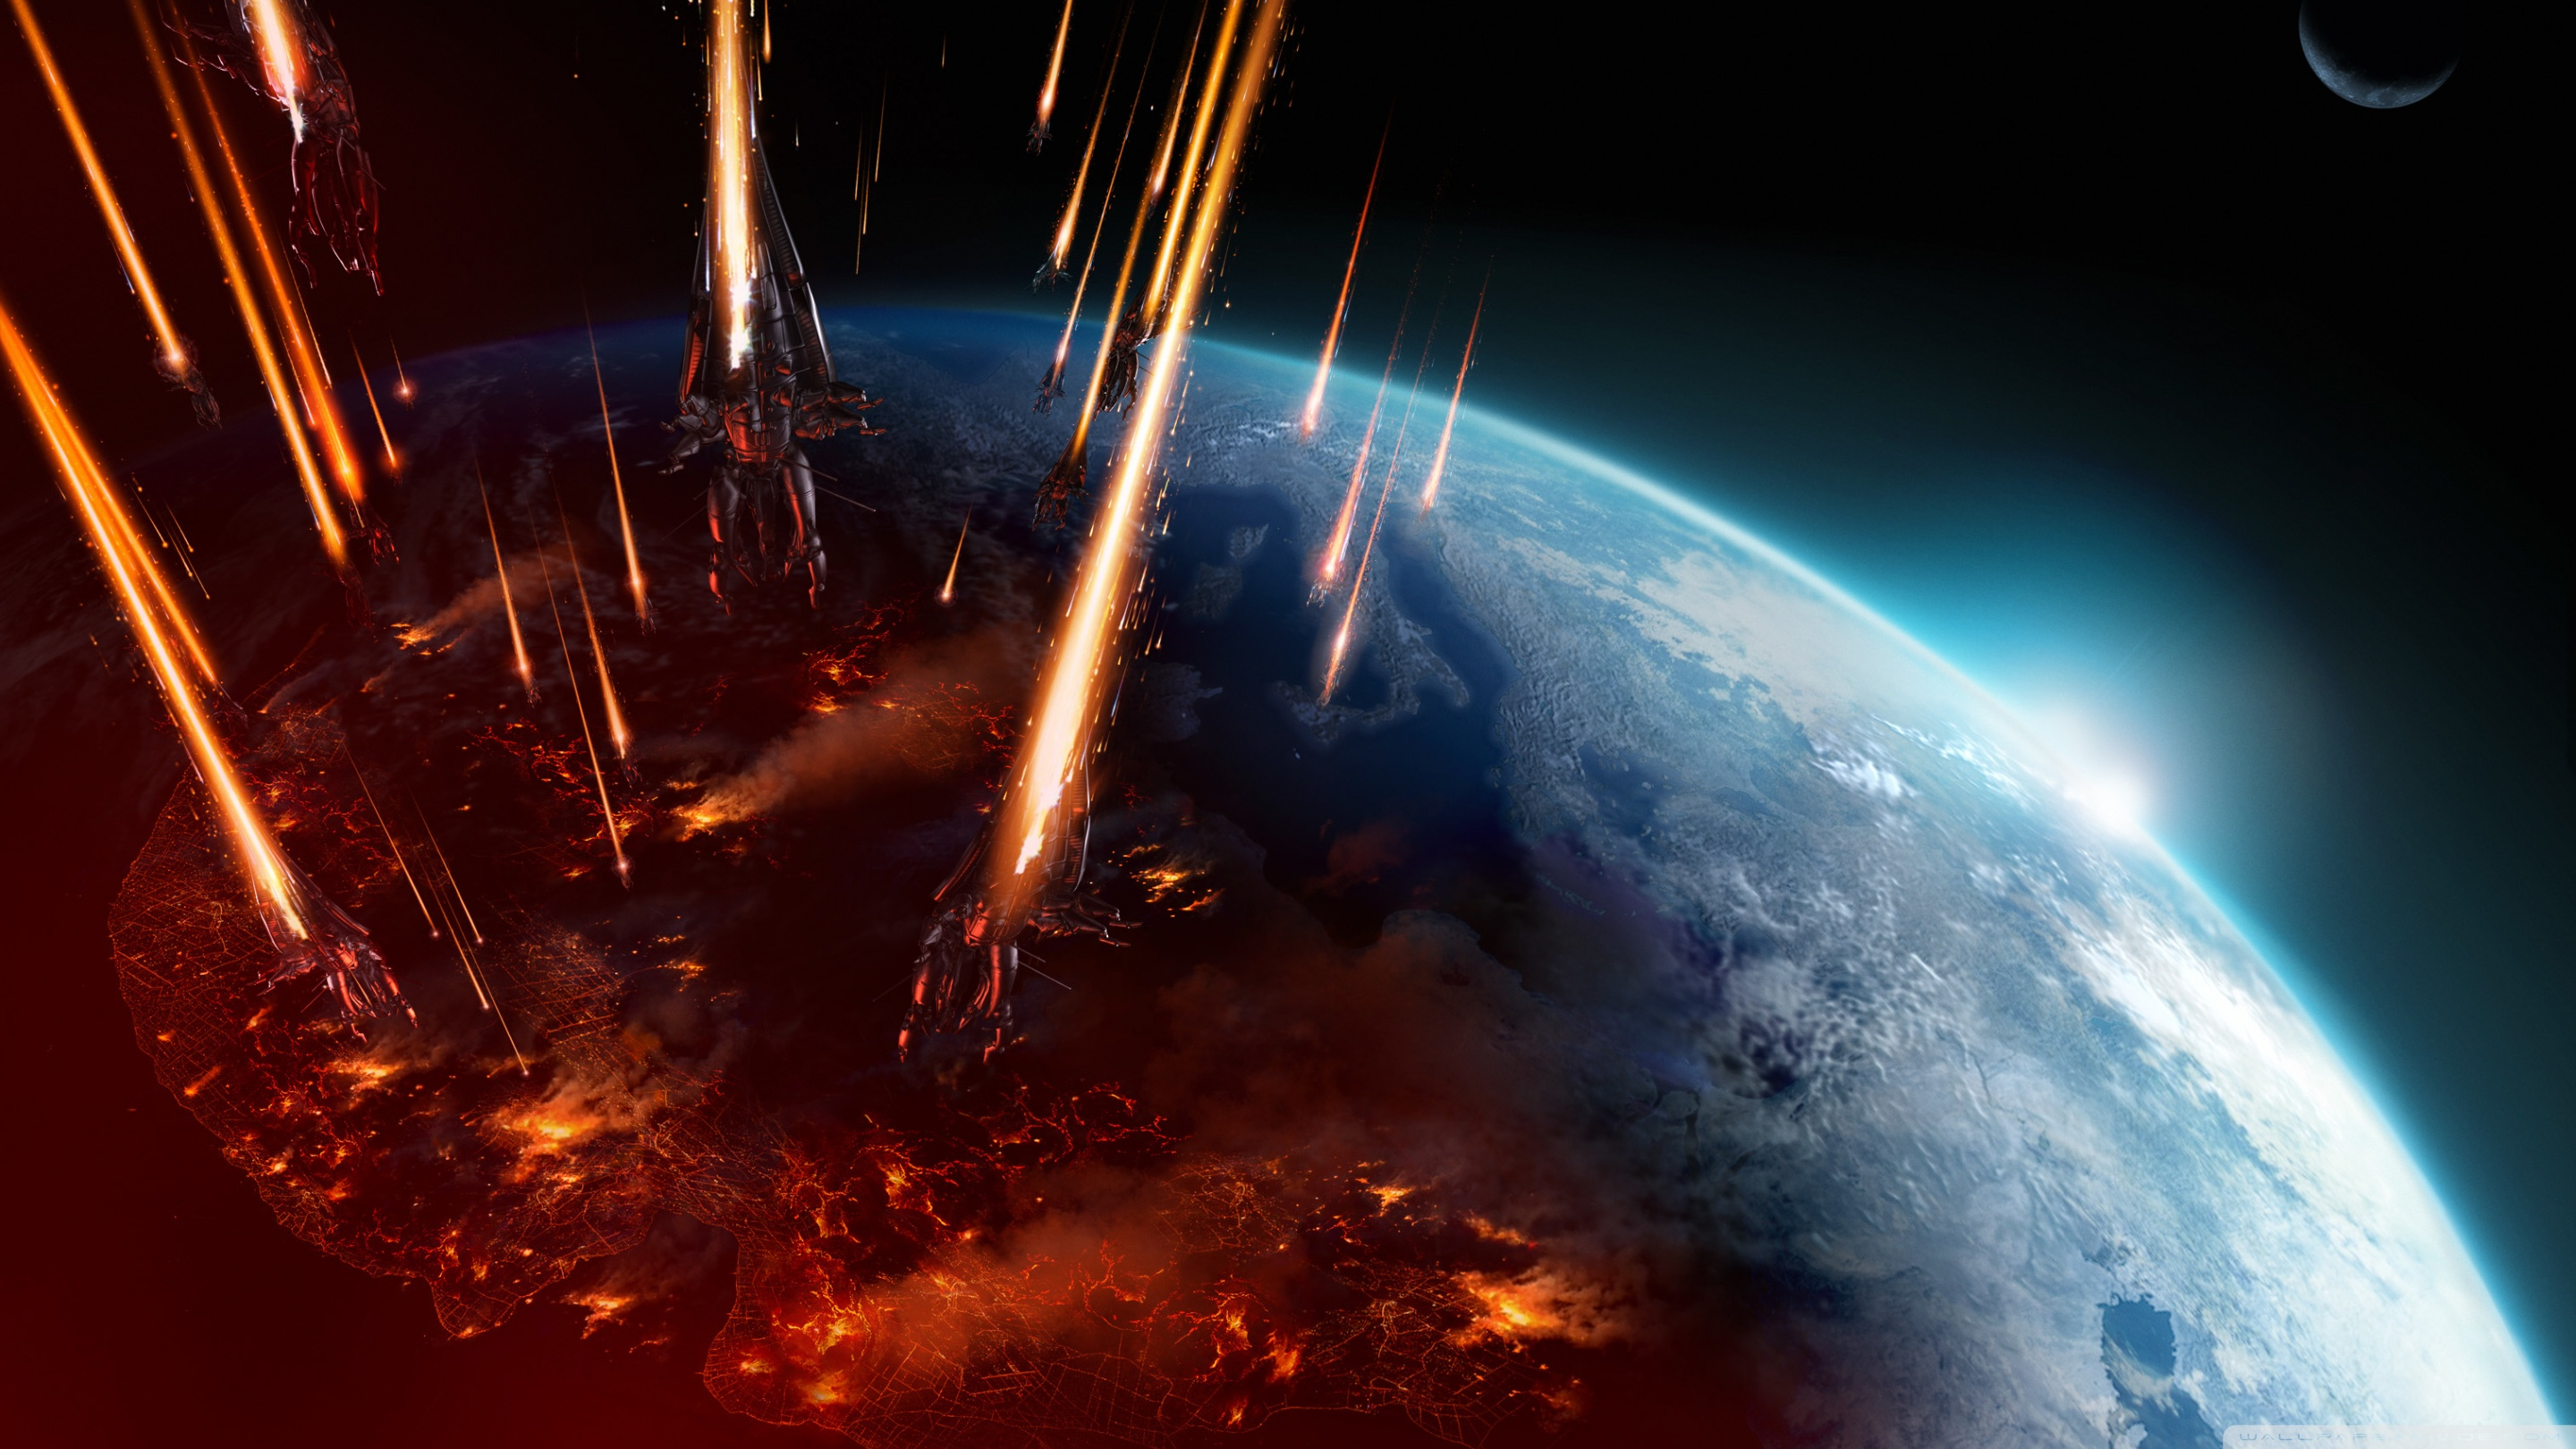 Mass Effect 3 Wallpaper 1920x1080 Posted By Ethan Cunningham